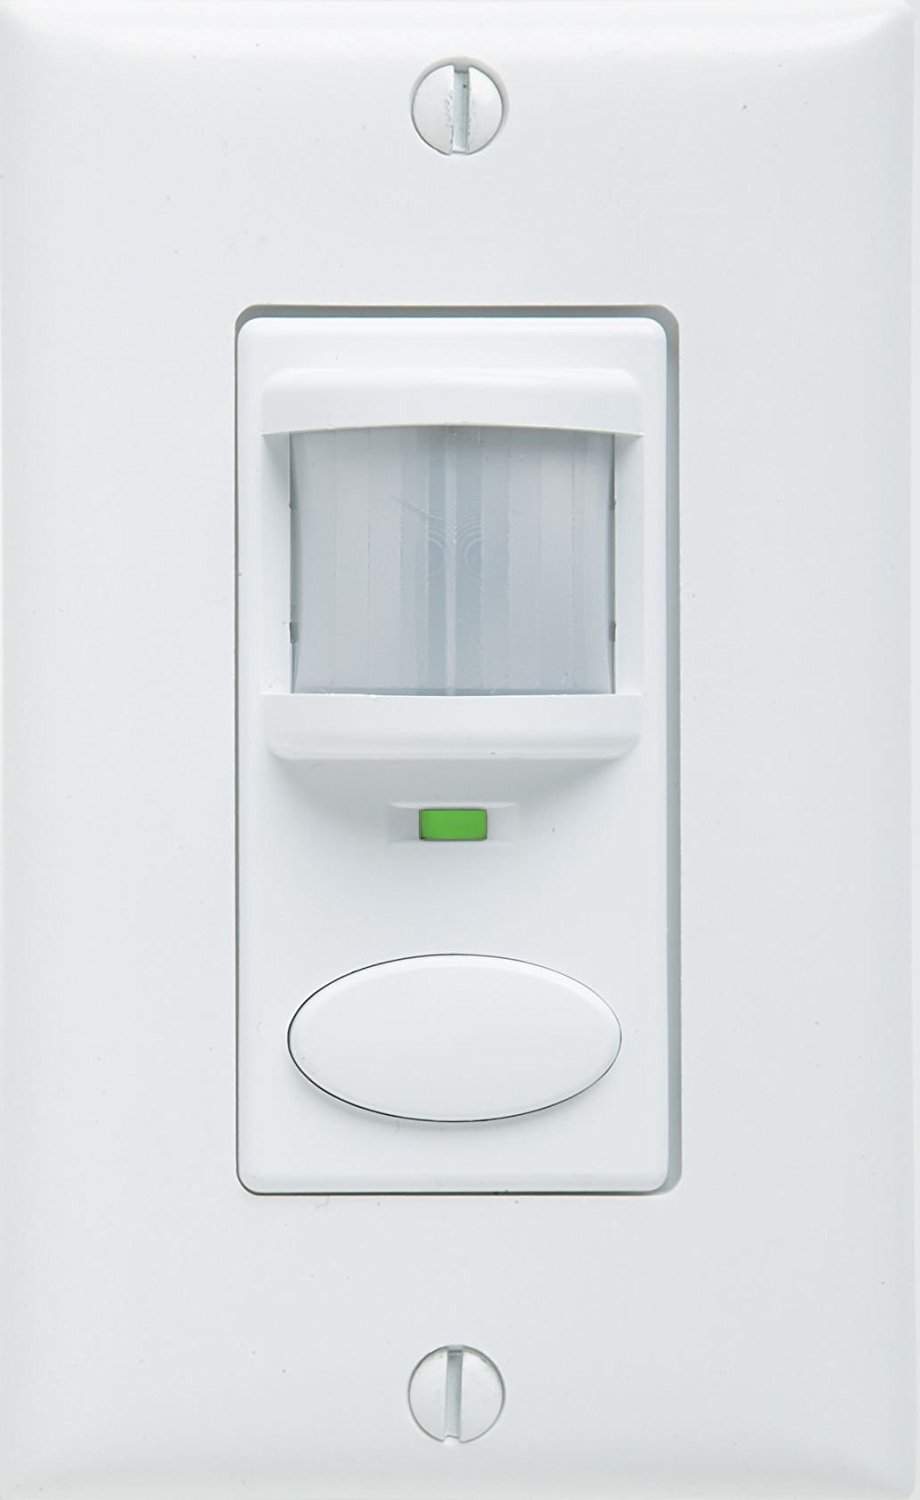 White WSD PDT VA WH Dual Technology Vacancy Only SENSORSWITCH WSD-PDT-VA-WH ACUITY Wall Switch Decorator Sensor